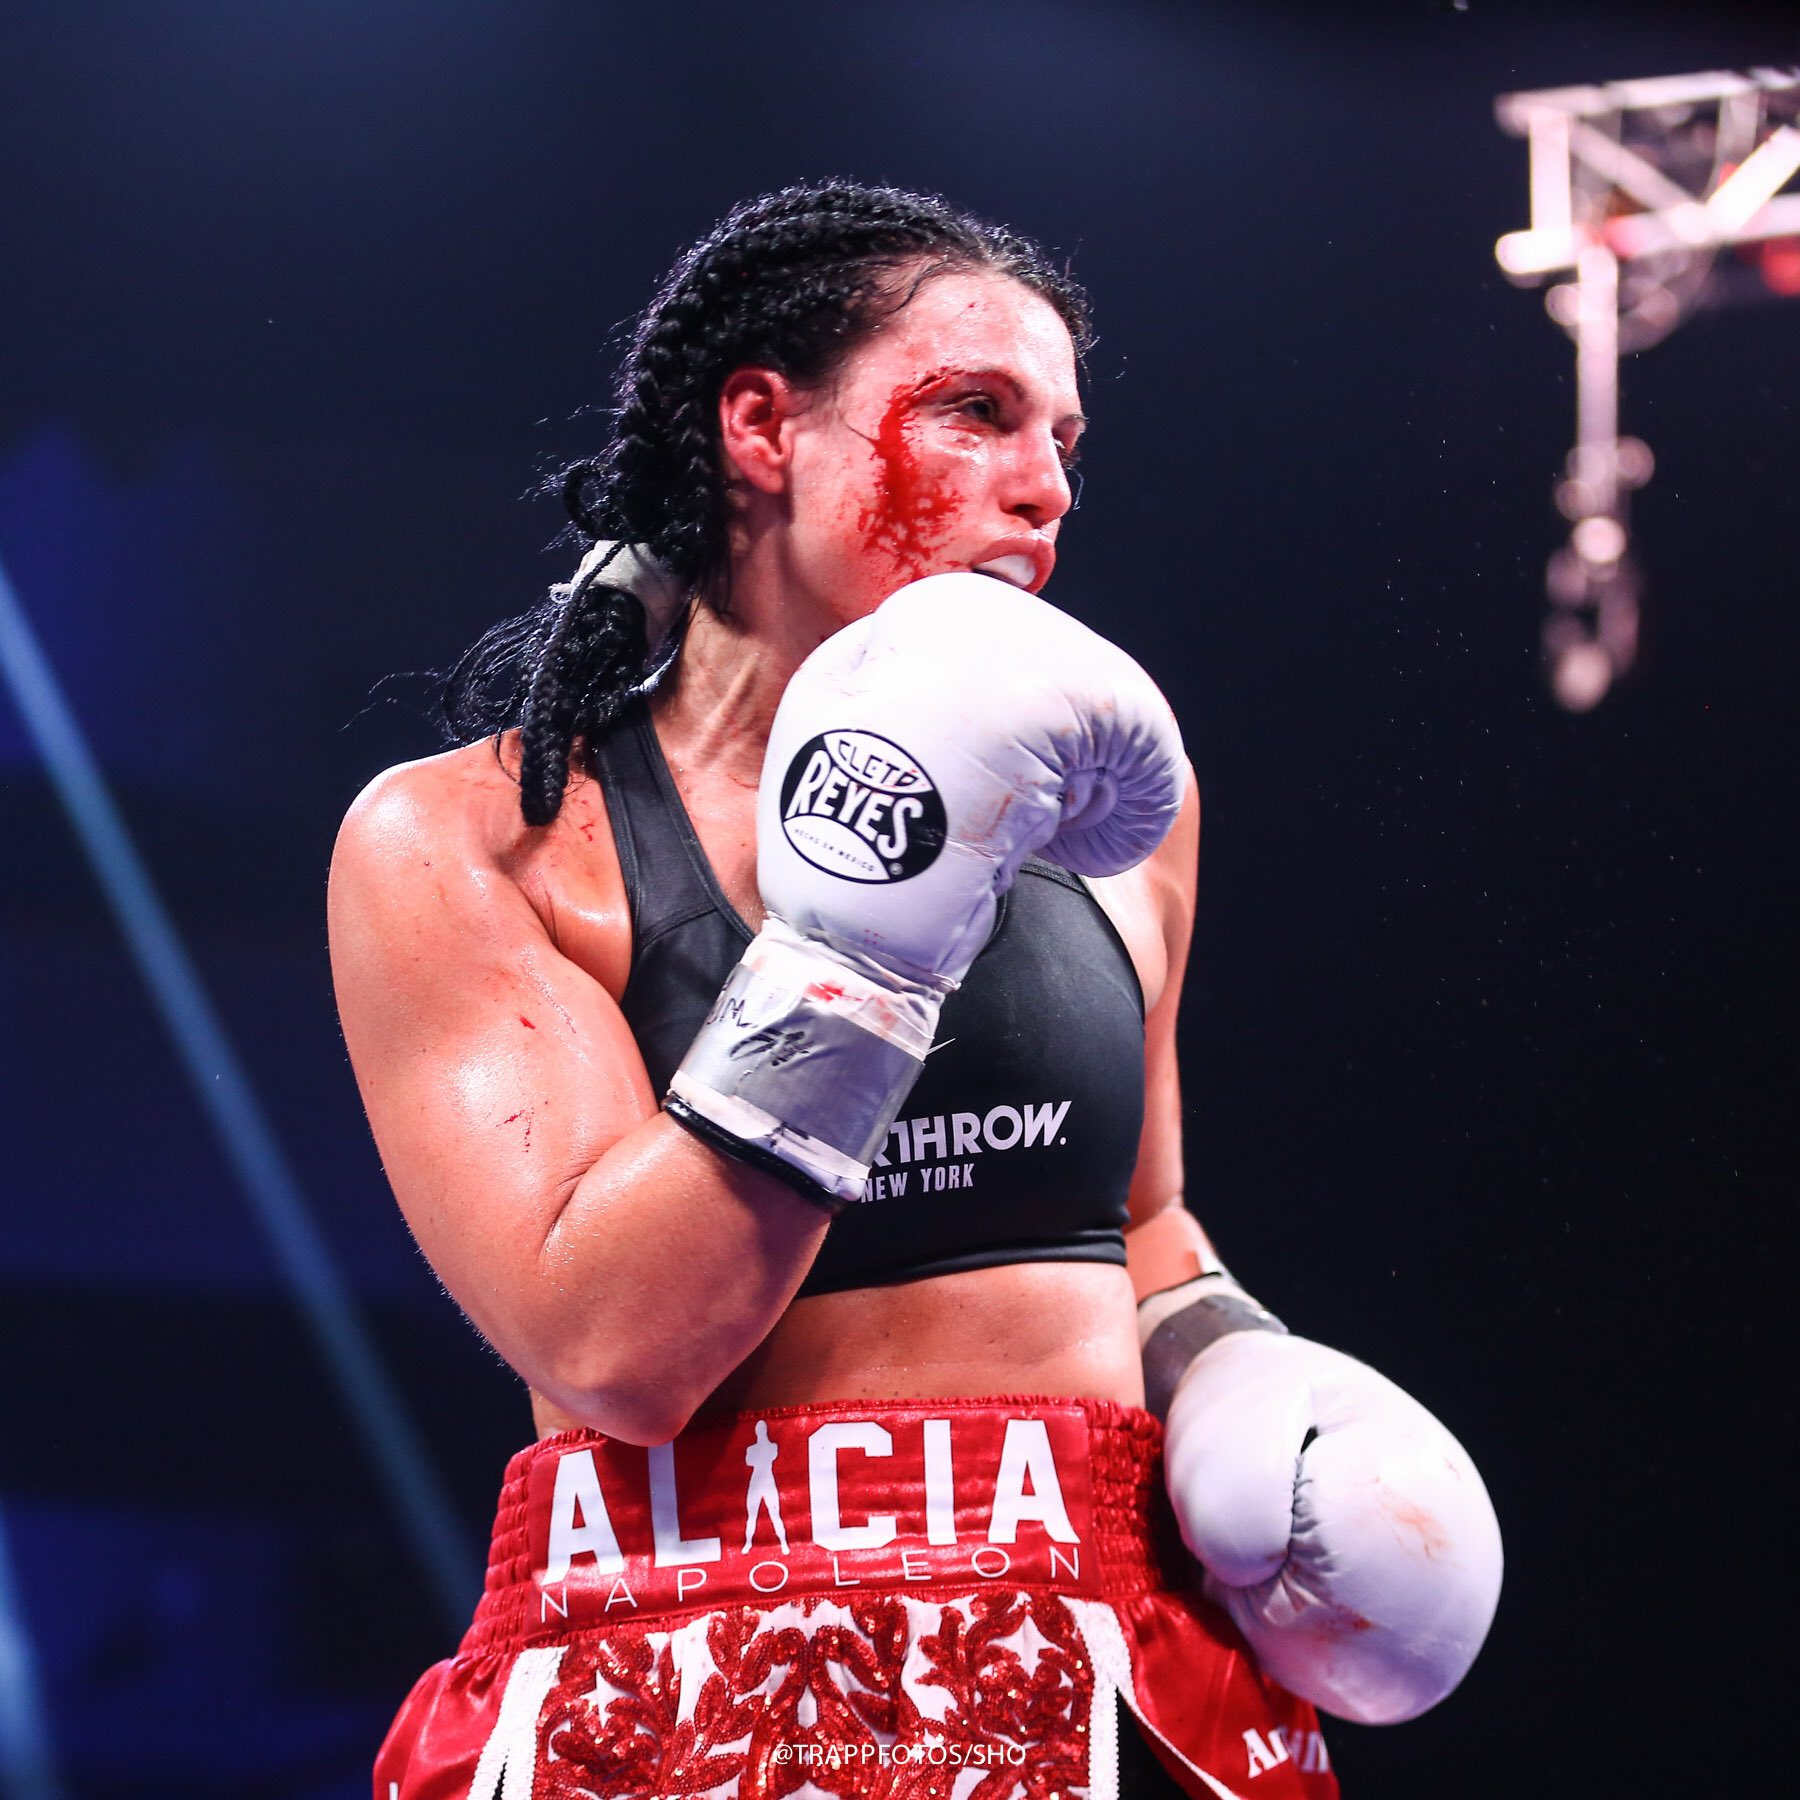 90ADC3B0 3D10 4F0F 8A20 C5EBB3C0C7C6 - Alicia Napoleon-Espinoza Ends The Debate On Women's Boxing